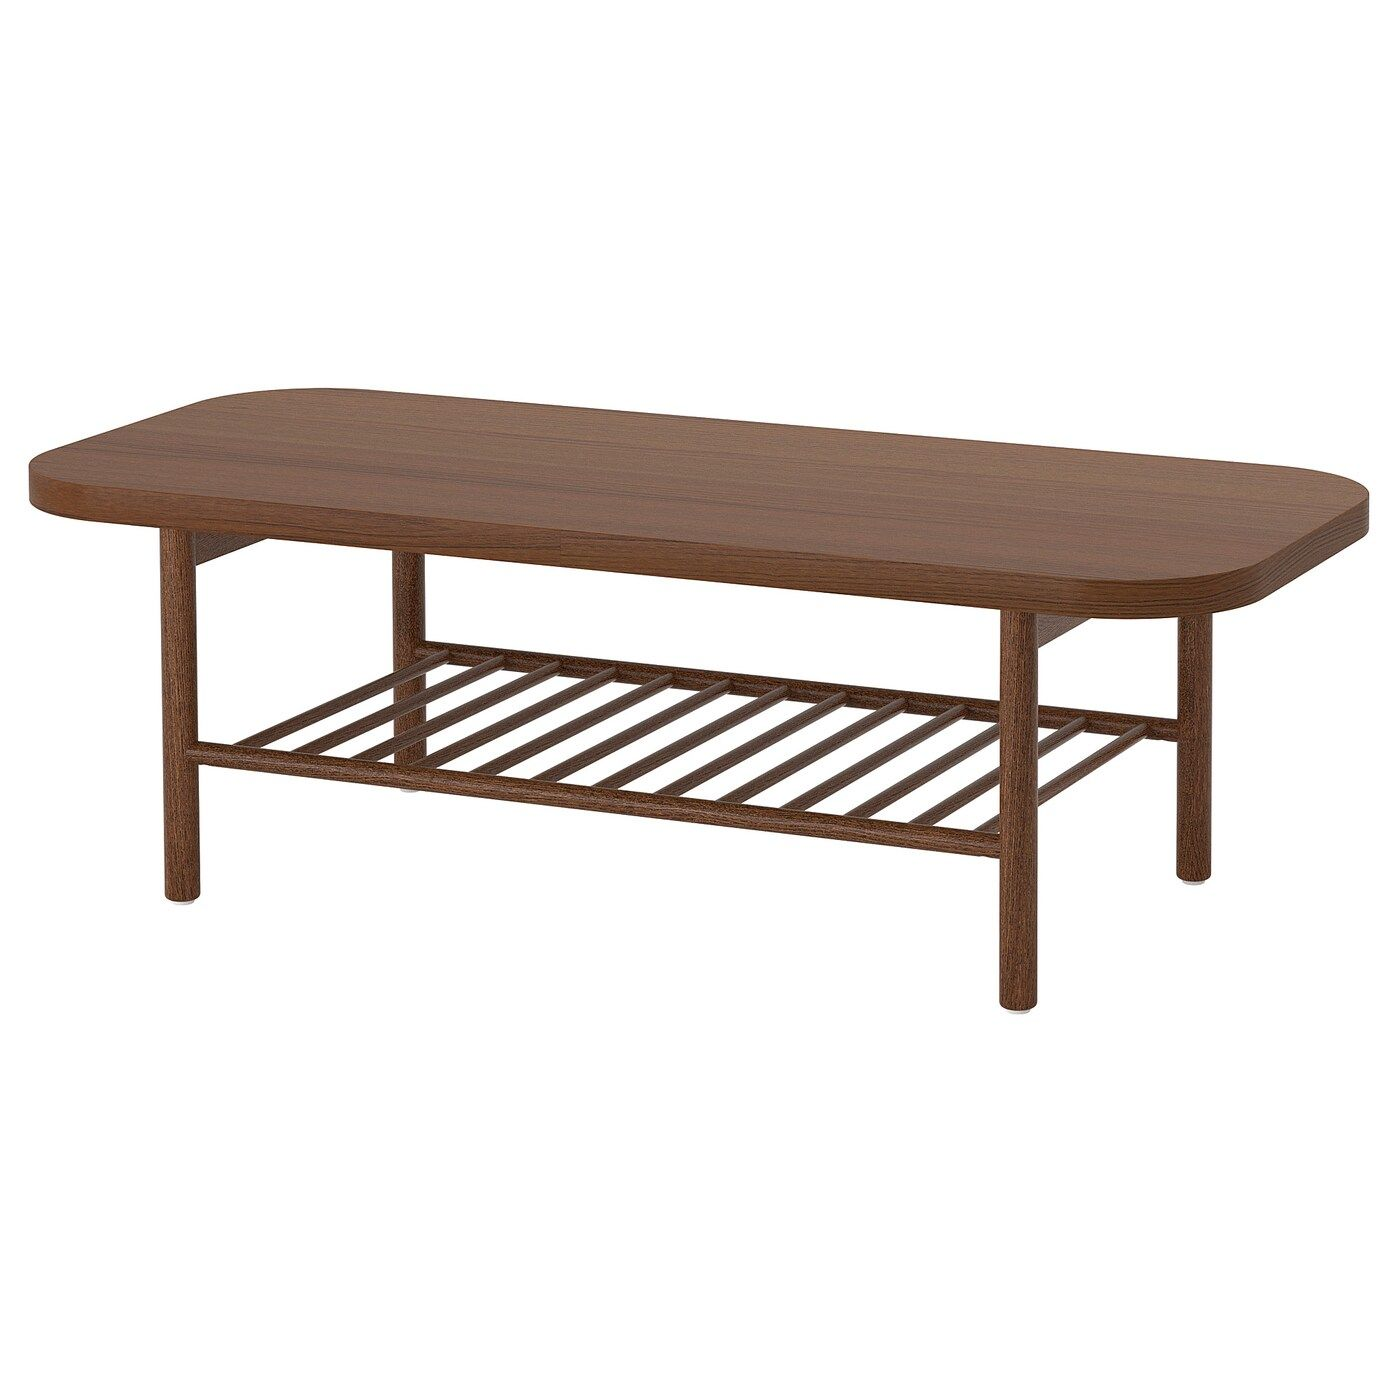 Listerby Coffee Table Brown 55 1 8x23 5 8